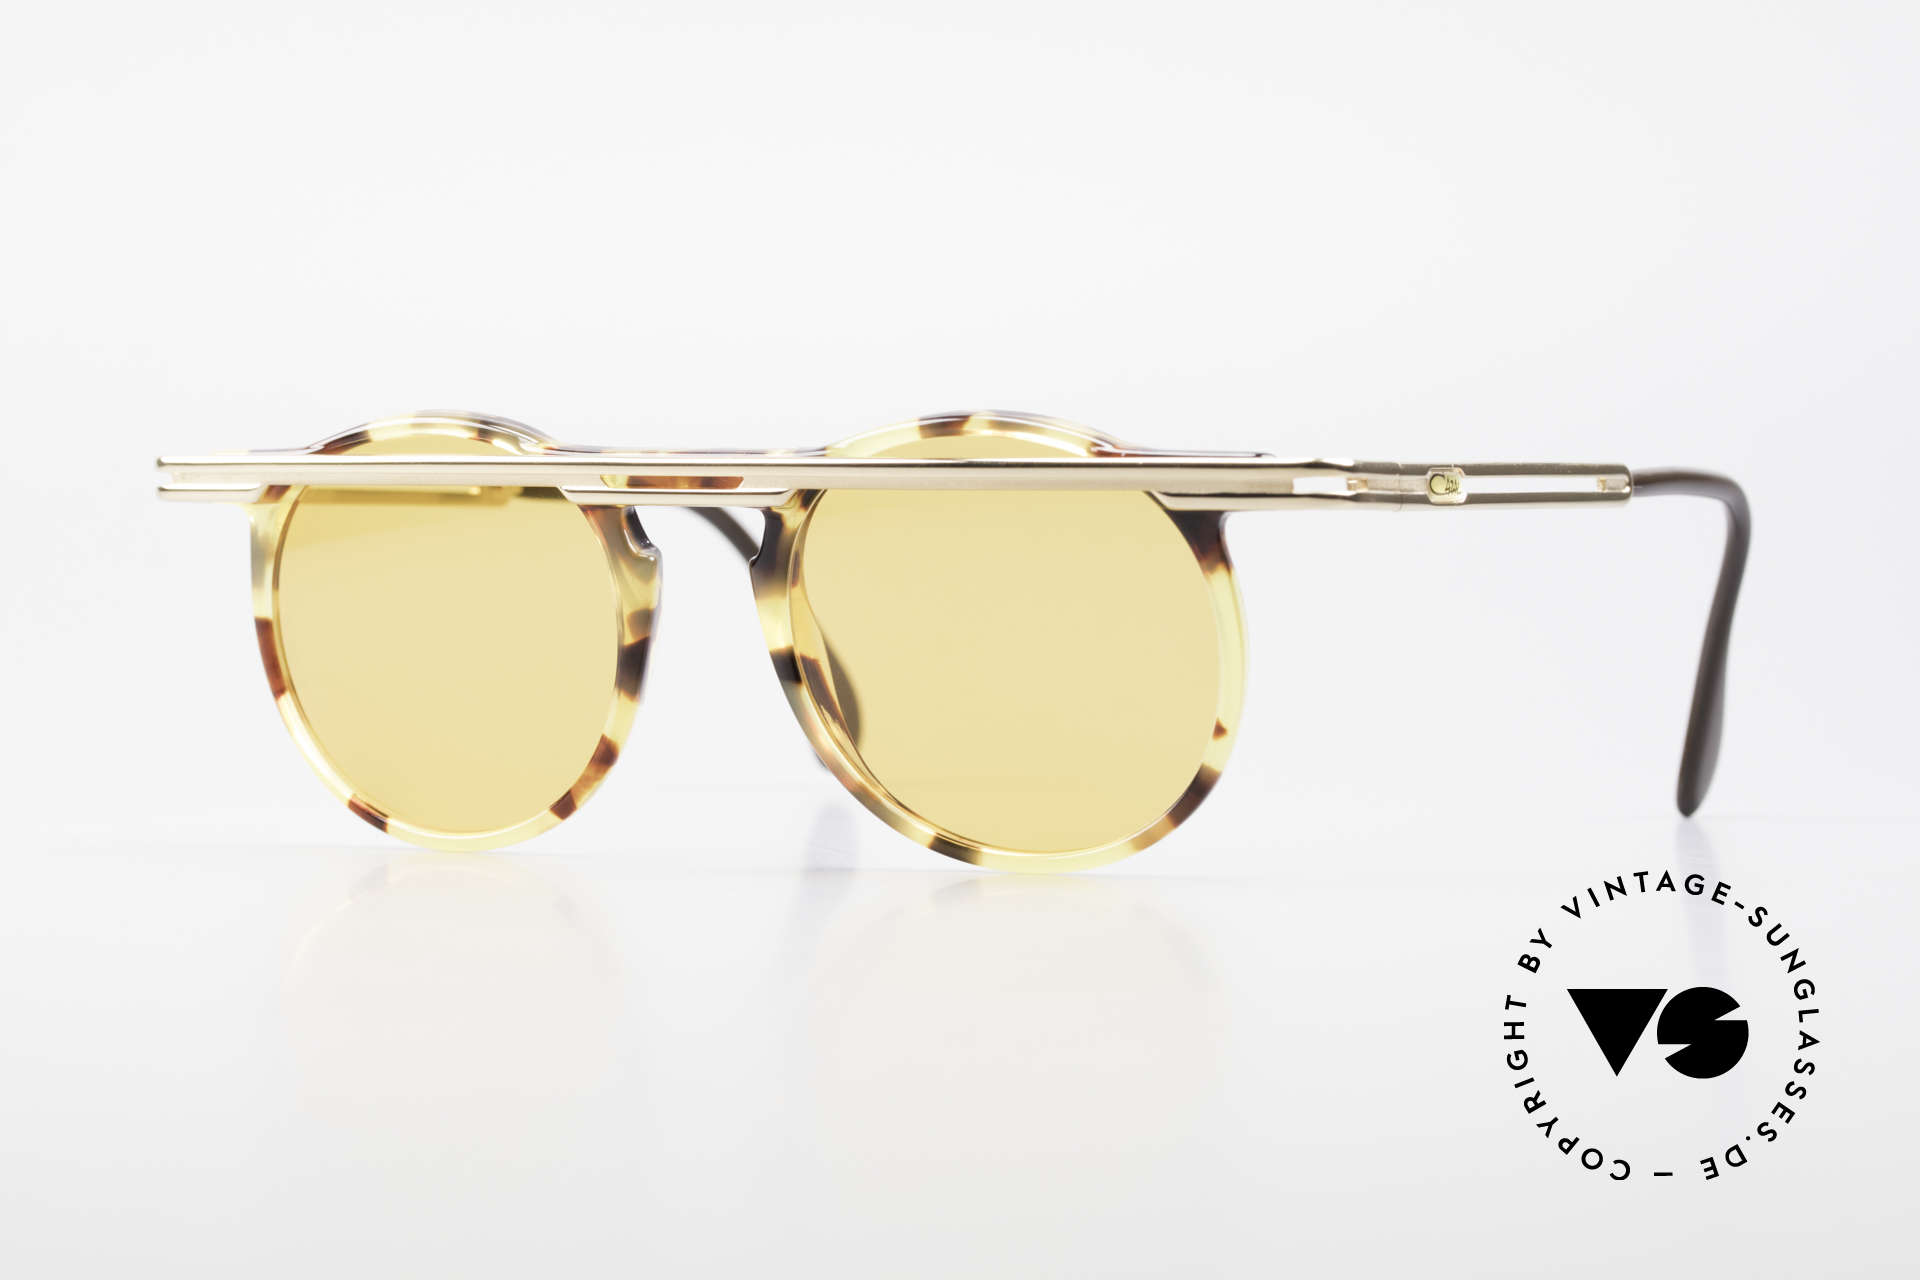 Cazal 648 90's Cari Zalloni Sunglasses, extraordinary CAZAL vintage sunglasses from 1990, Made for Men and Women